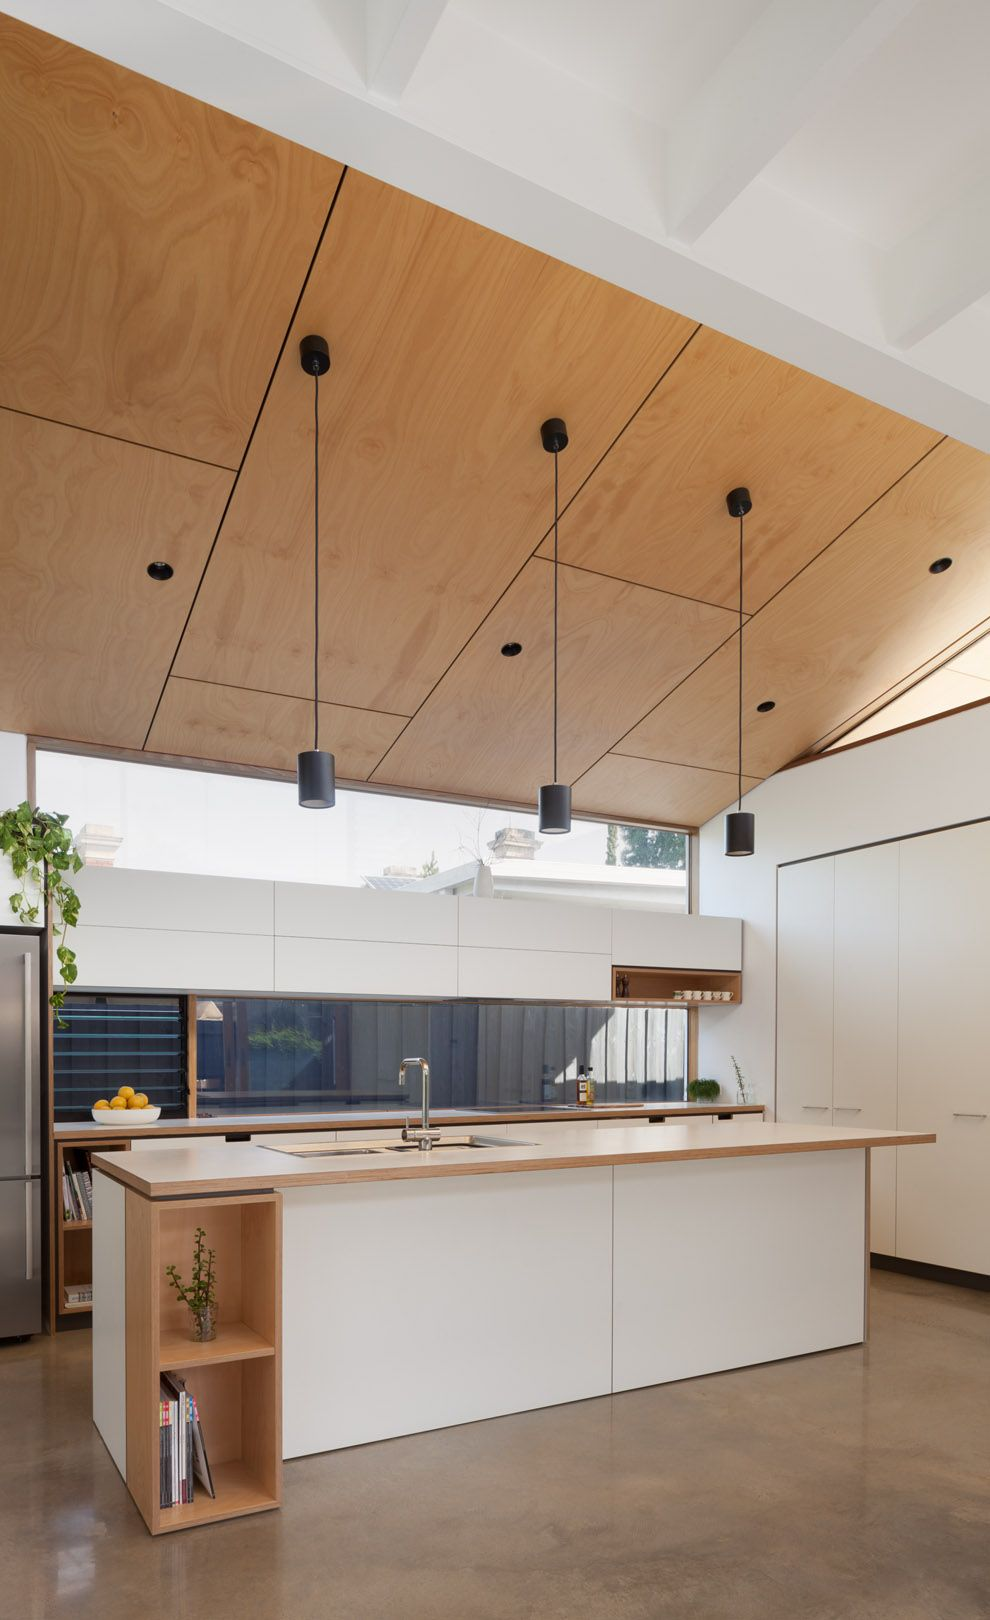 Ceiling And Lights Plywood Interior Plywood Ceiling